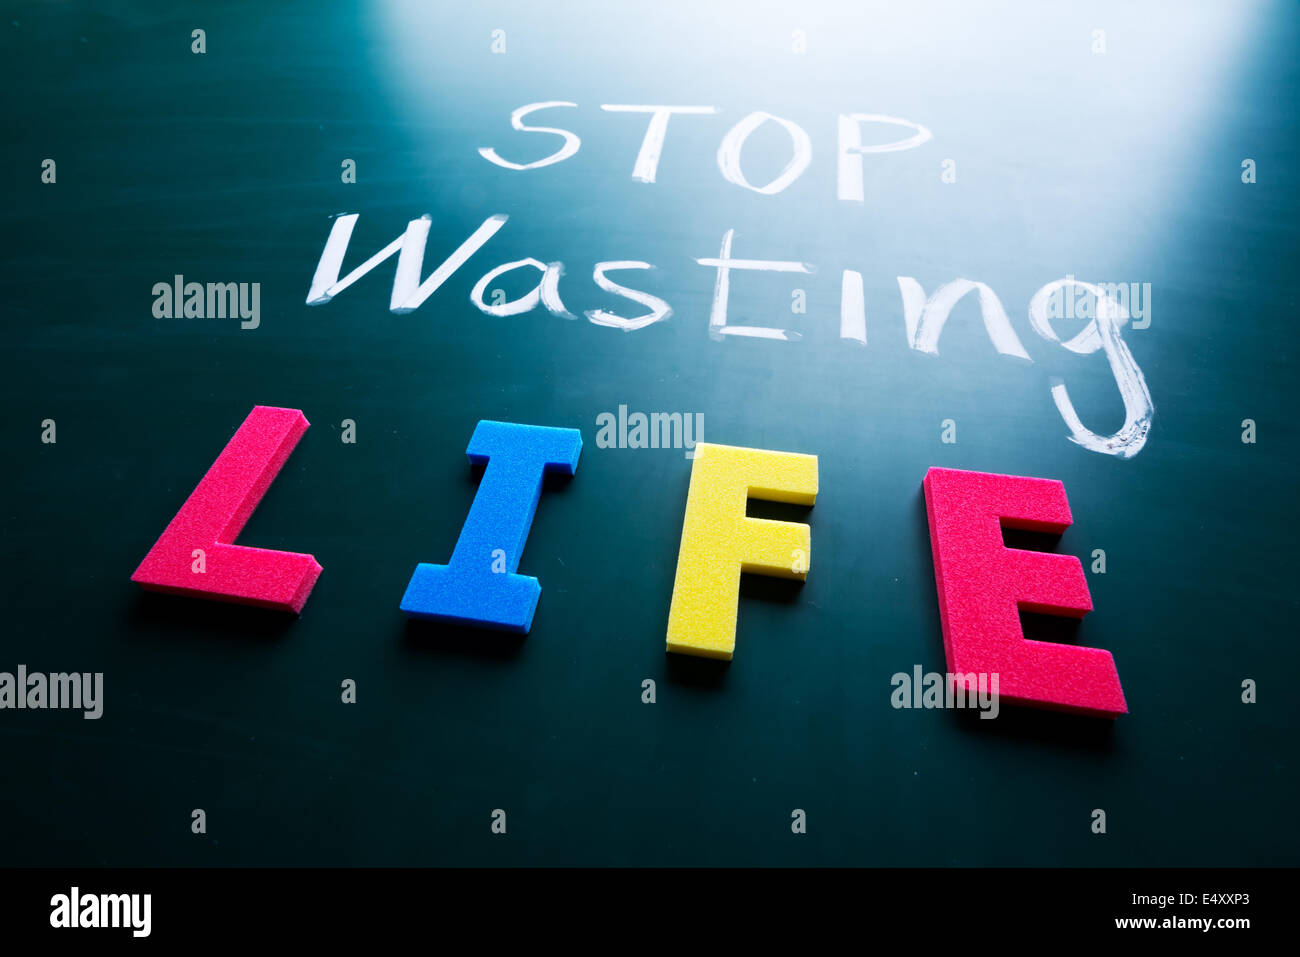 Stop wasting life concept - Stock Image